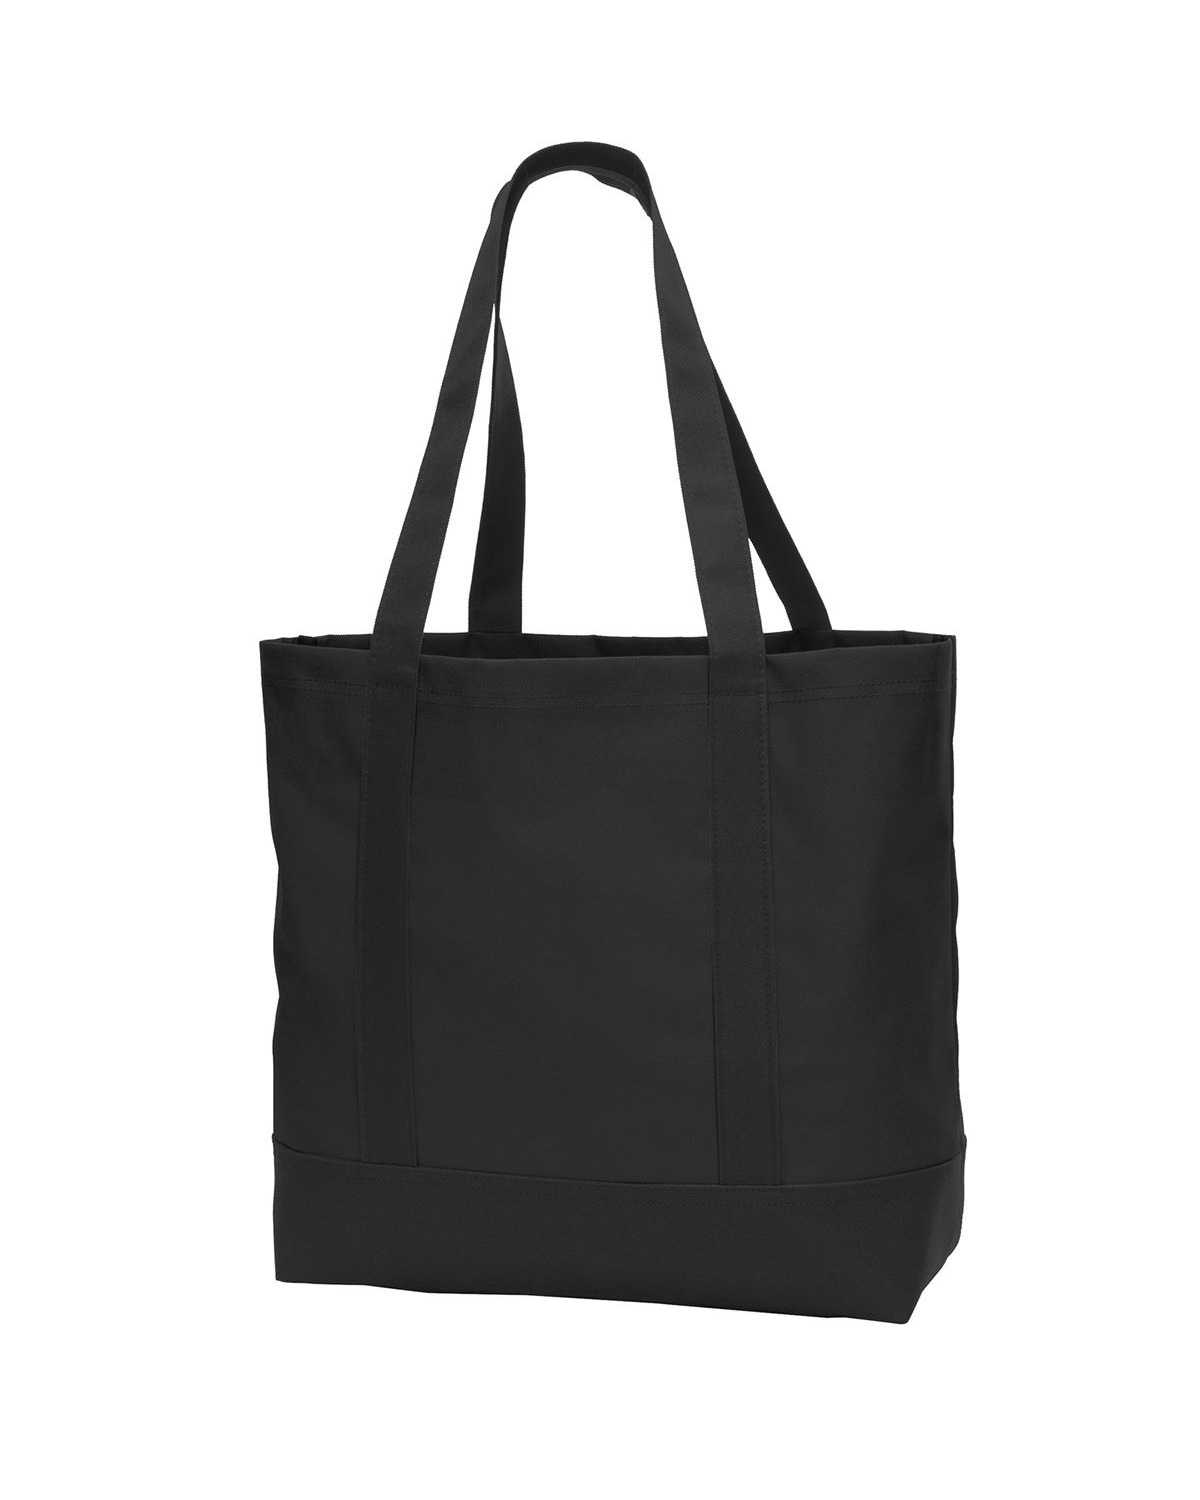 'Port Authority BG406 Day Tote'